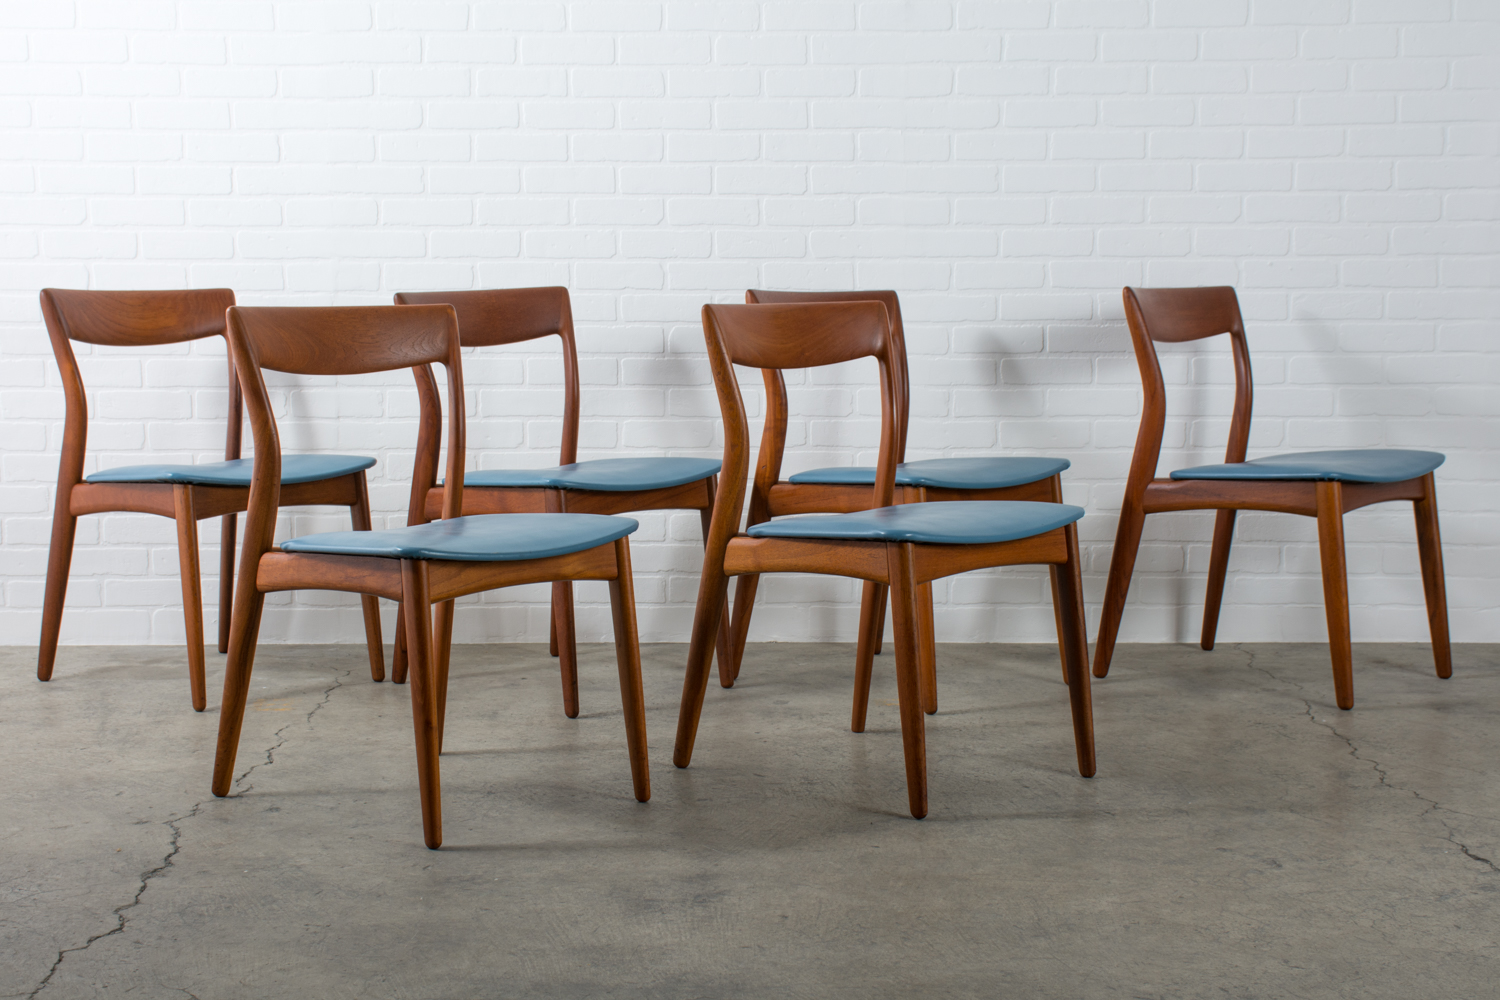 Copy of Six Mid-Century Modern Teak Dining Chairs by Viborg Stolefabrik, Denmark